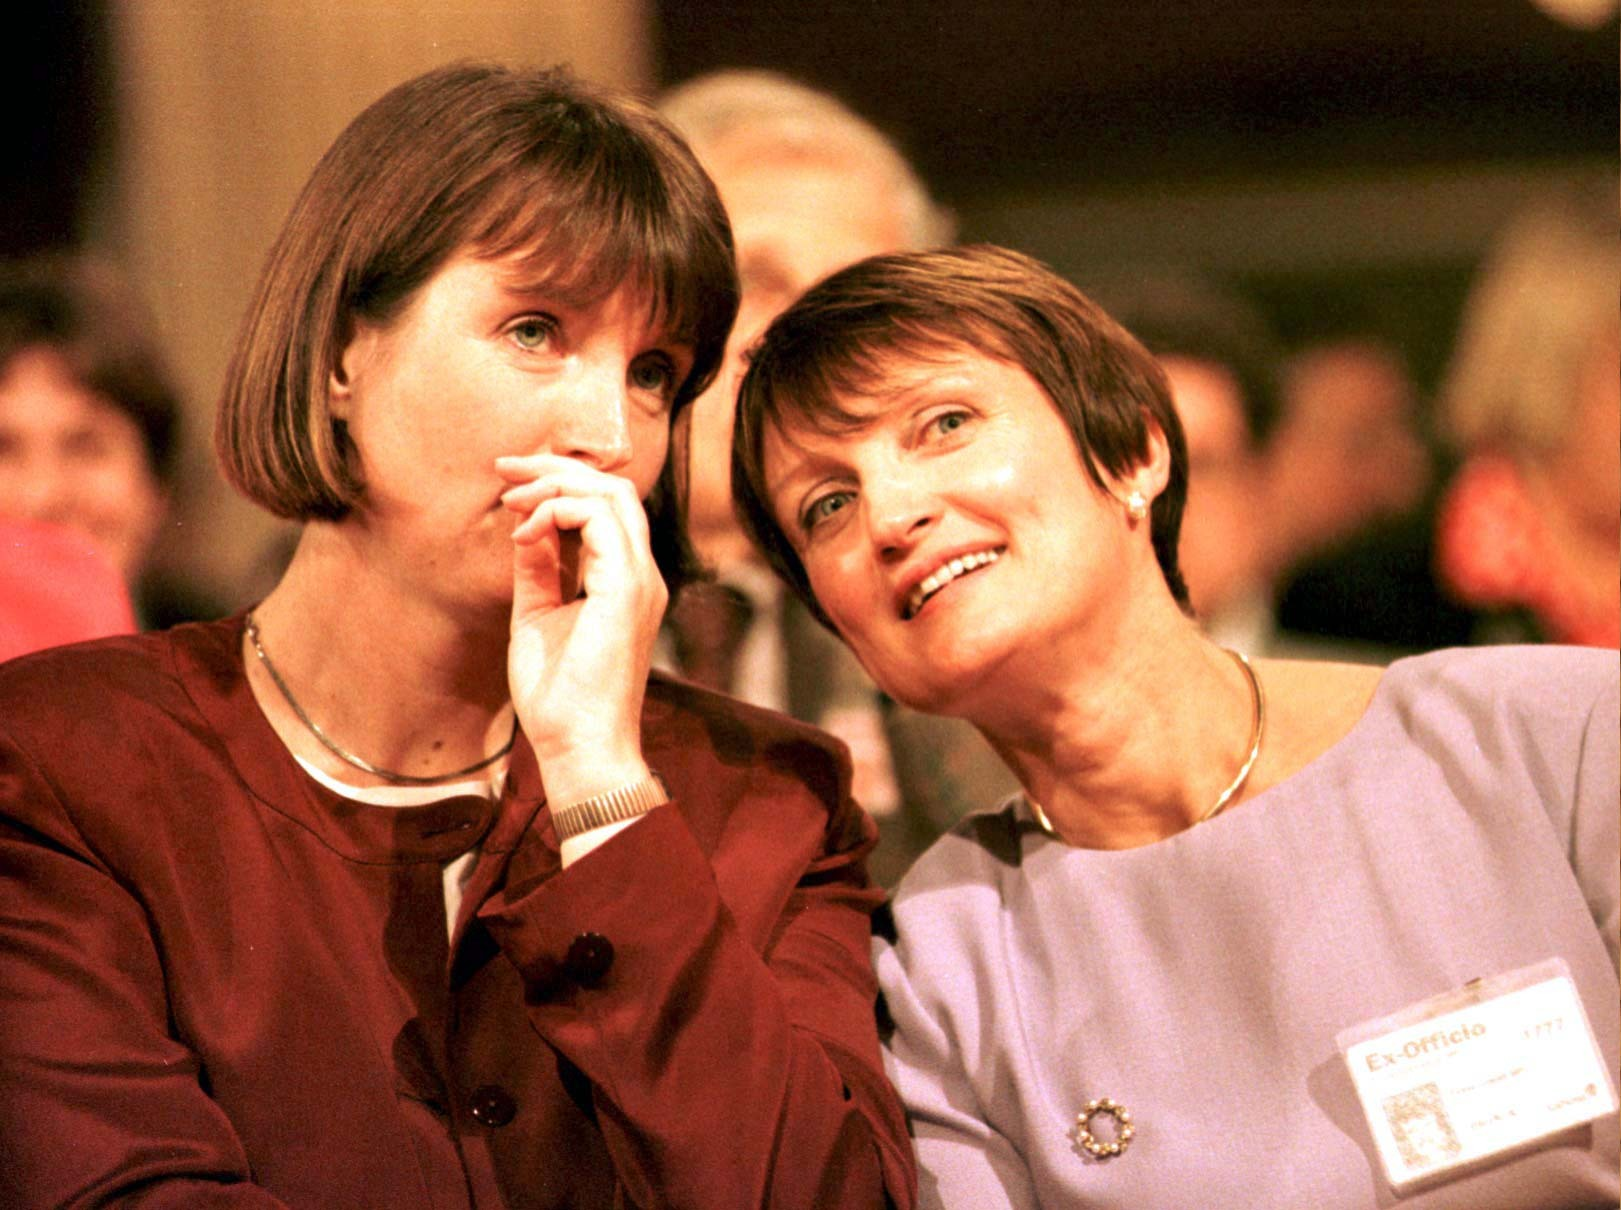 Former Labour cabinet minister Tessa Jowell dies aged 70